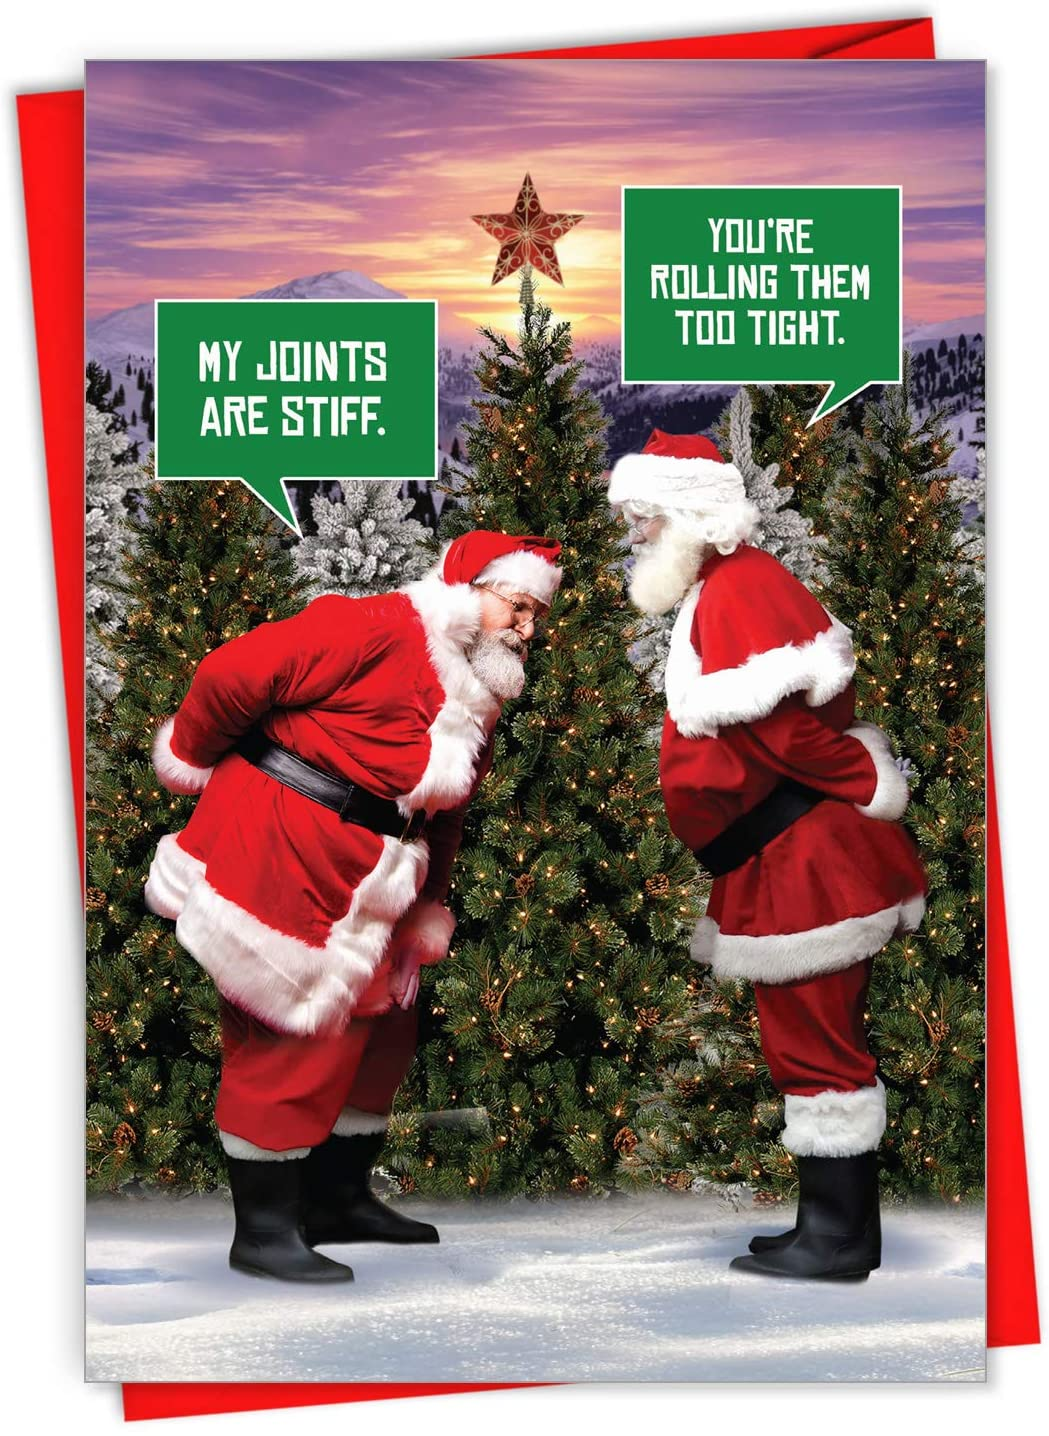 Santa Stiff Joints - Box of 12 Funny Merry Christmas Cards with Envelopes (4.63 x 6.75 inch) - Smoking Santa Claus, Holiday Joke Card for Adult Smokers - Xmas Stationery Gift Set C7037XSG-B12x1